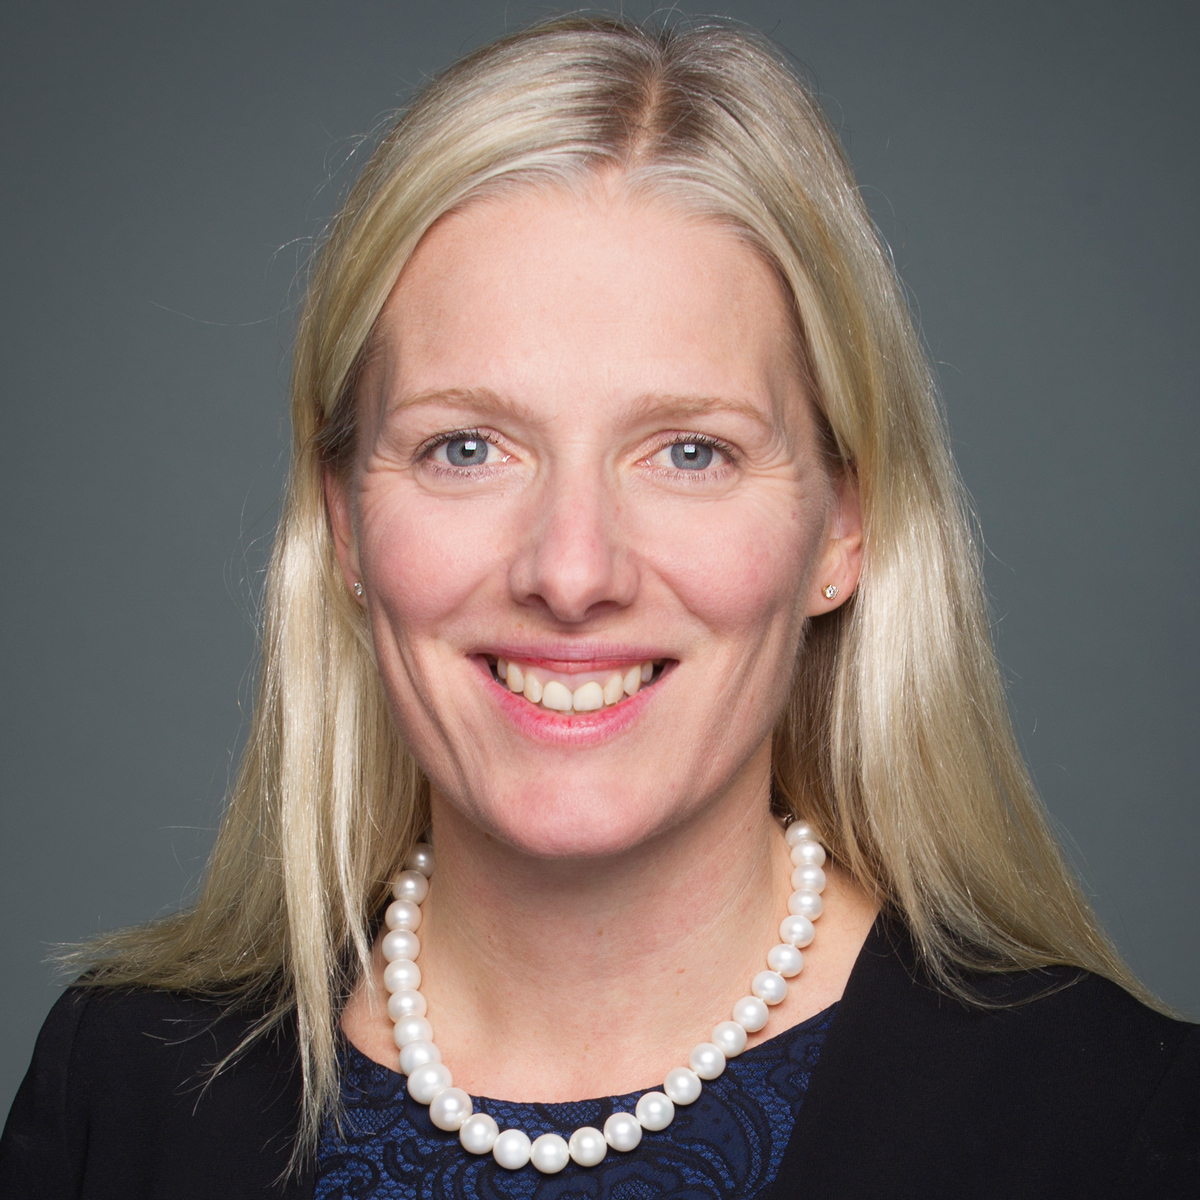 L'honorable Catherine McKenna